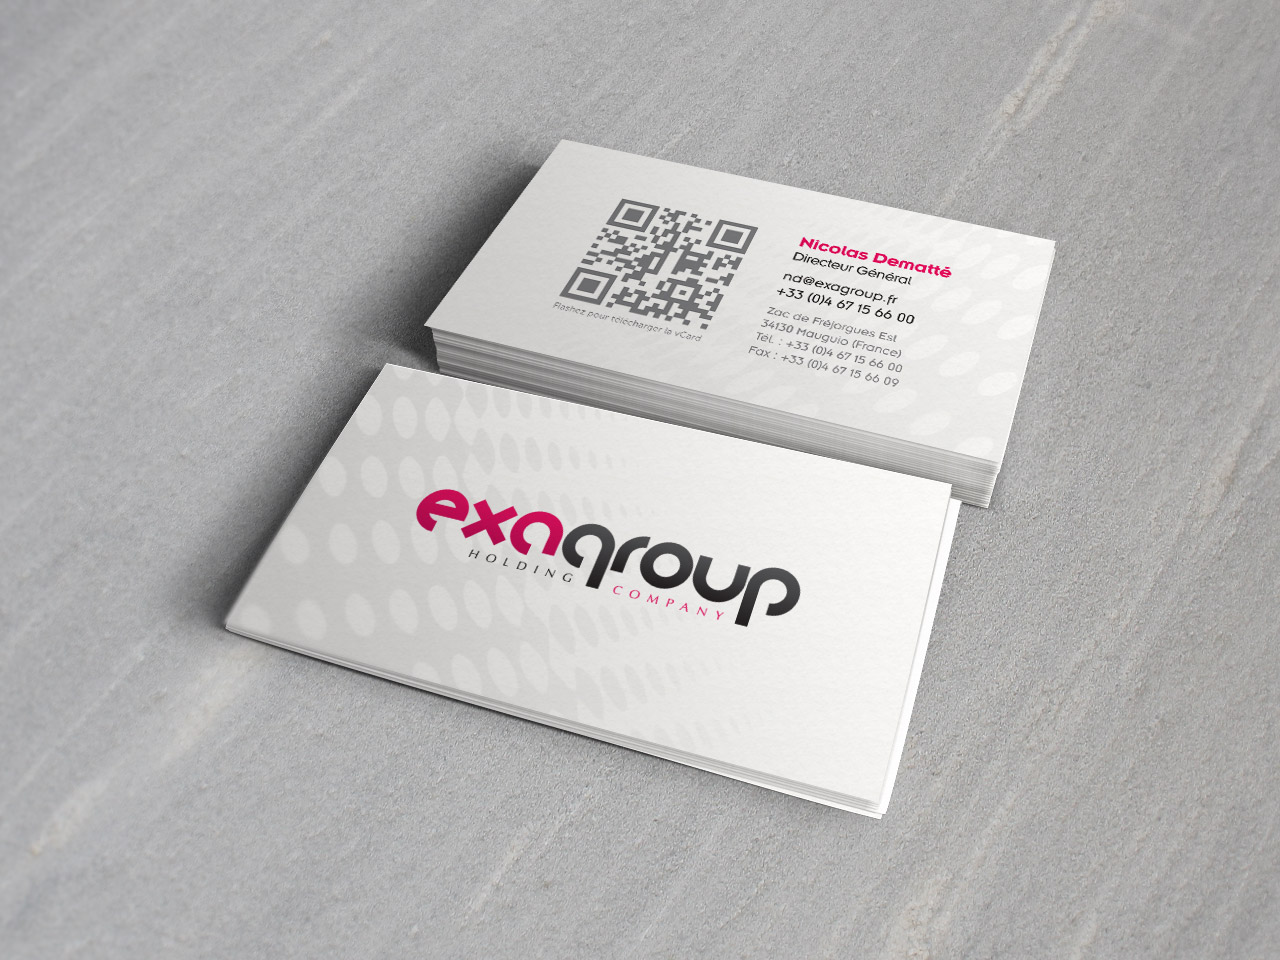 exagroup-logo-identite-visuelle-carte-creation-communication-caconcept-alexis-cretin-graphiste